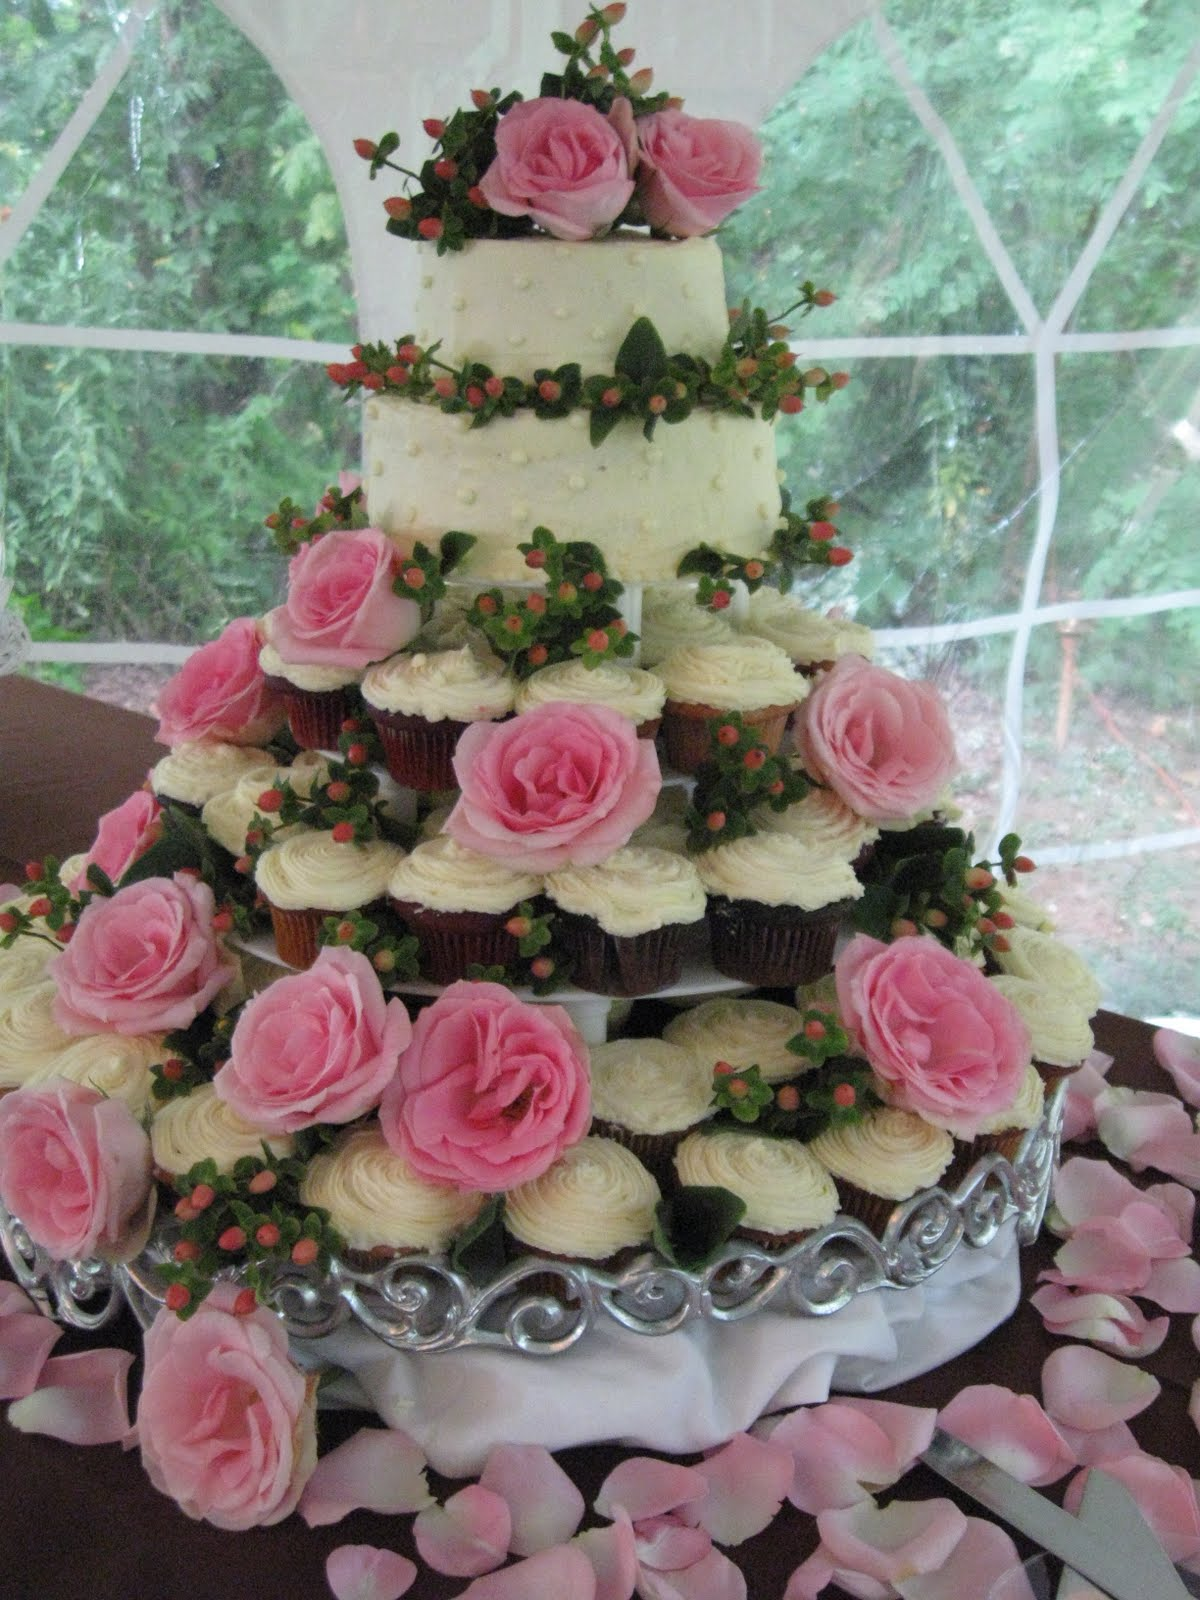 typical wedding cake or 3 tiers of cupcakes